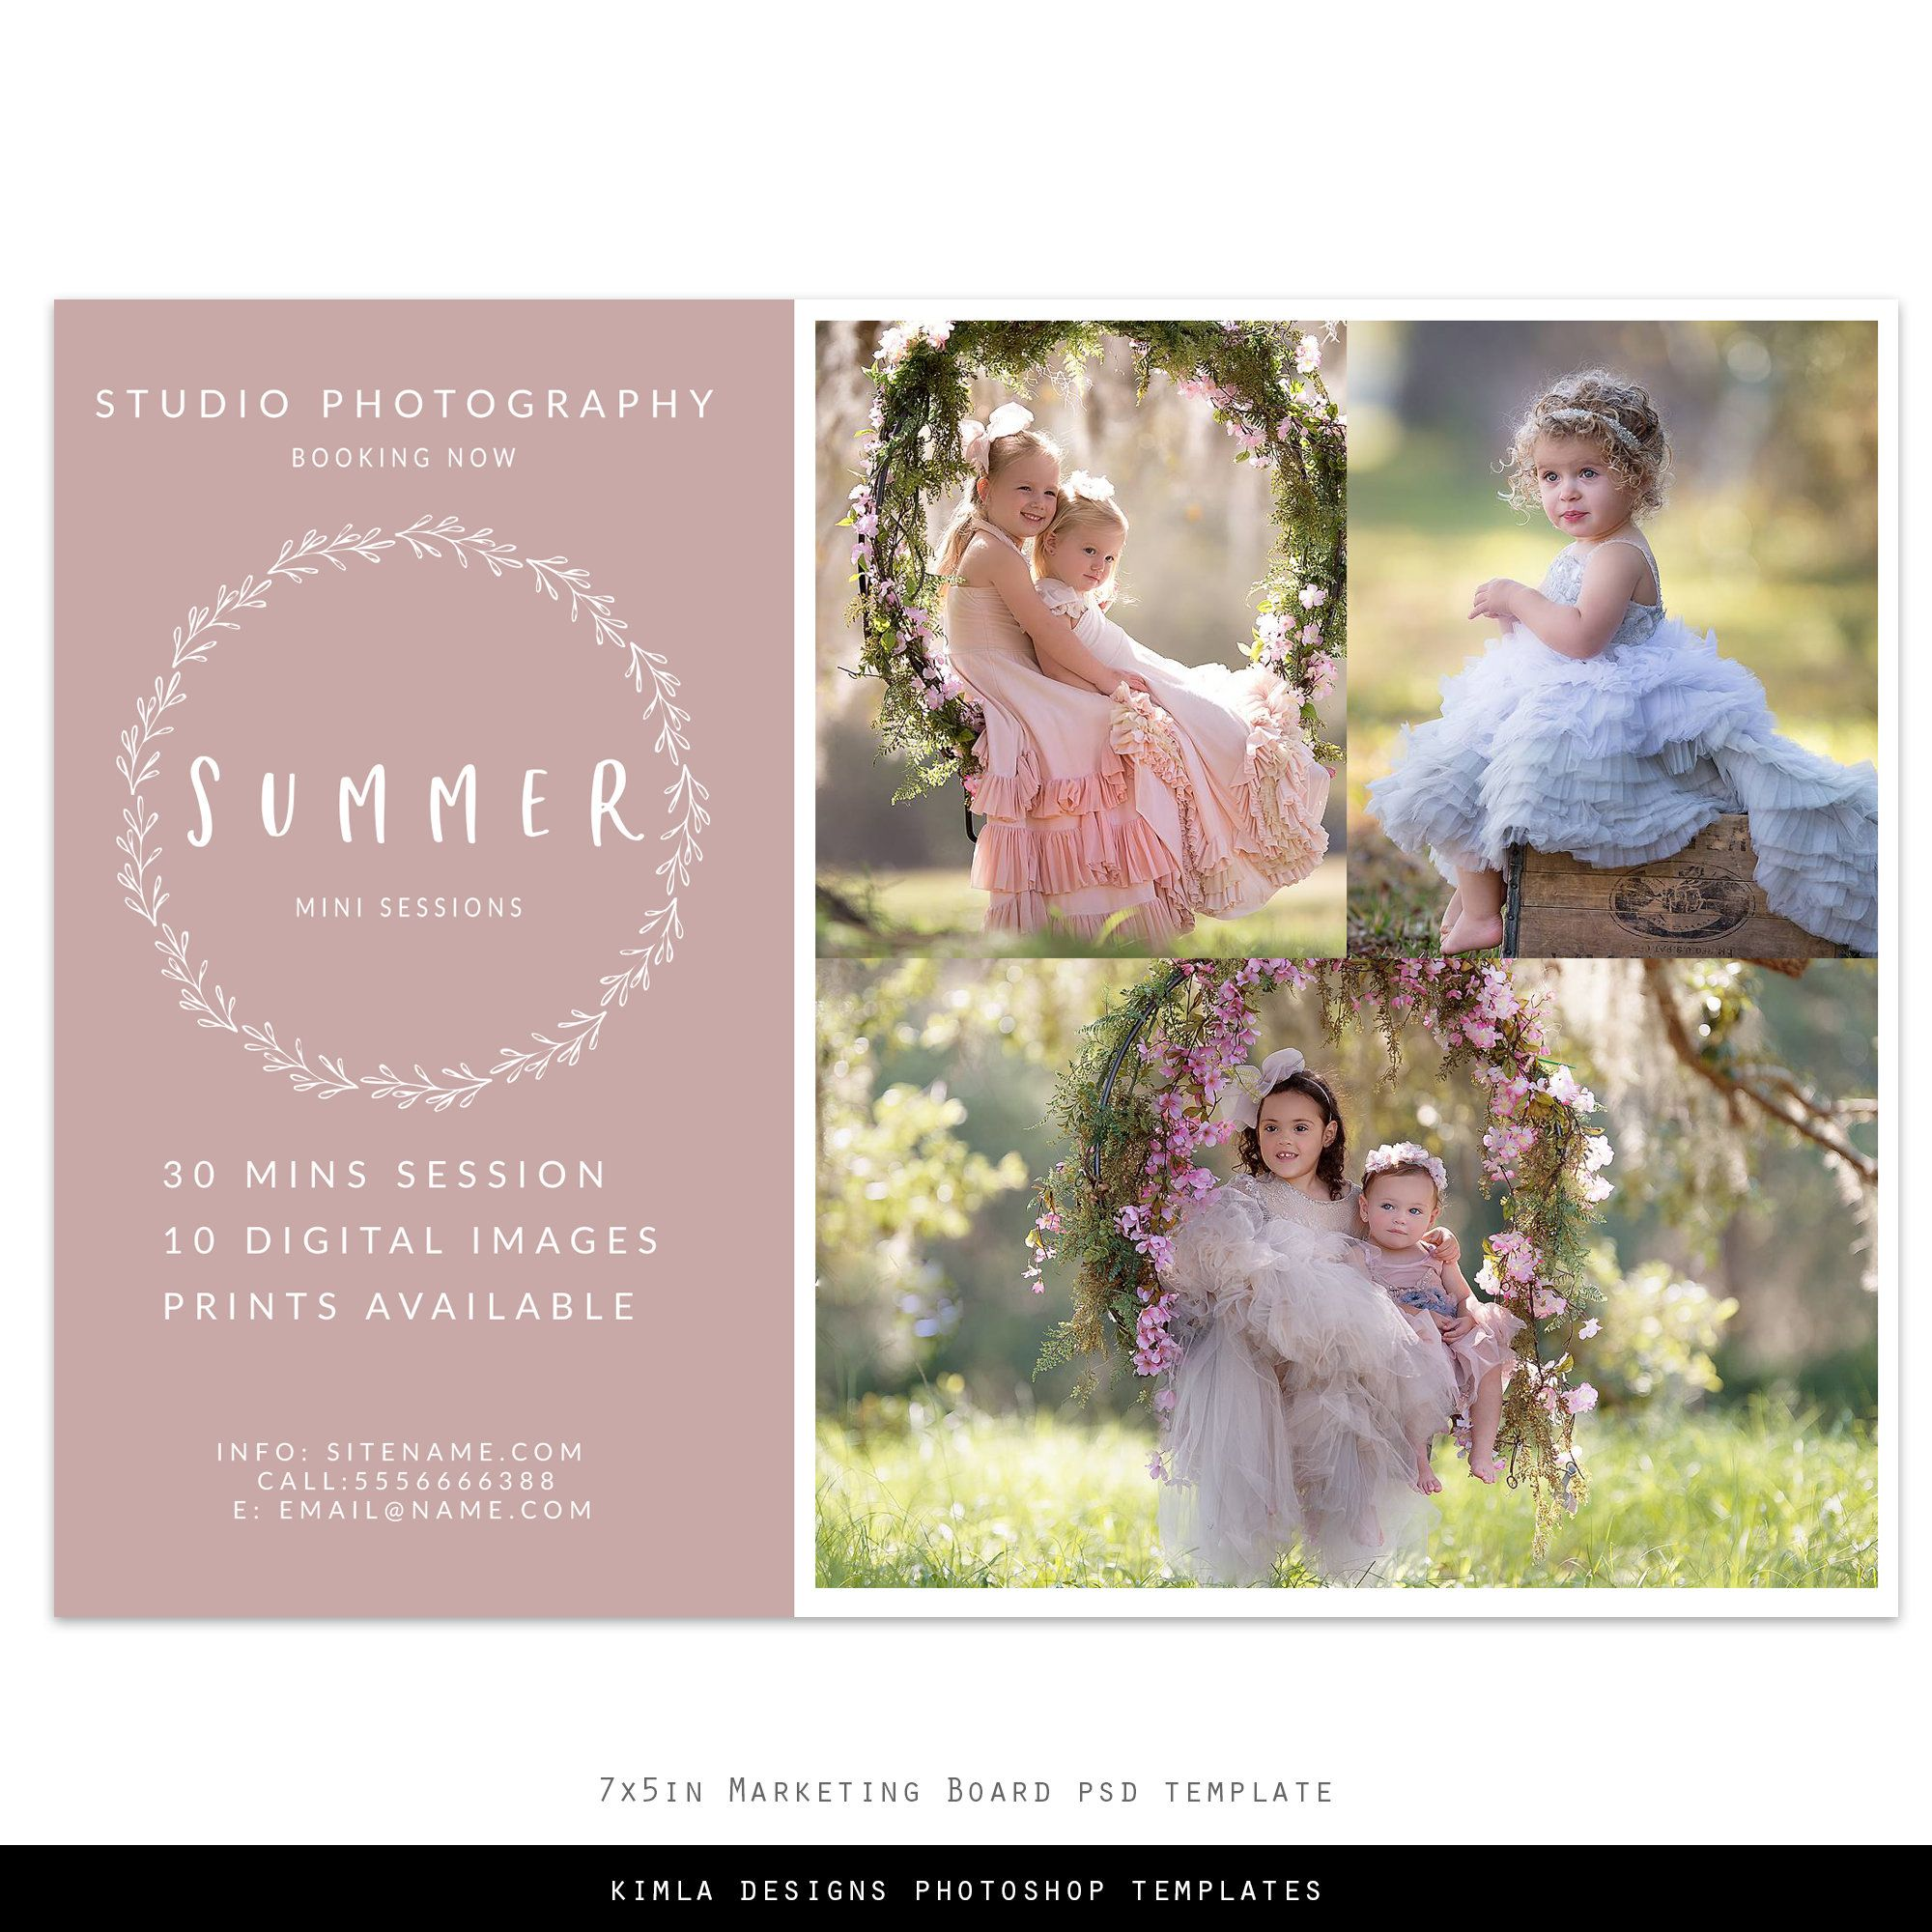 7x5in Photography Marketing Board Psd Template Summer 7x5in